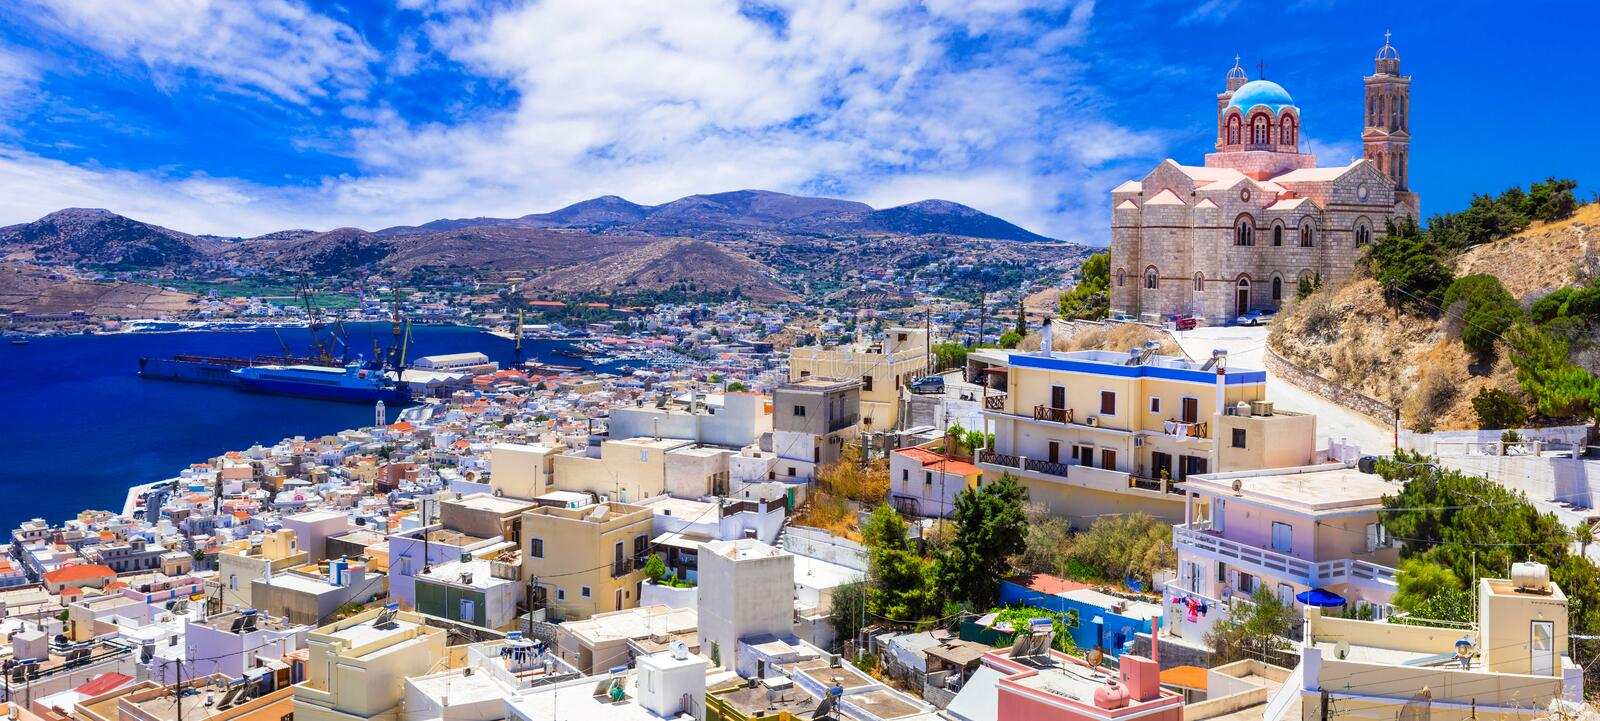 Beautiful islands of Greece - Syros, Cyclades royalty free stock image